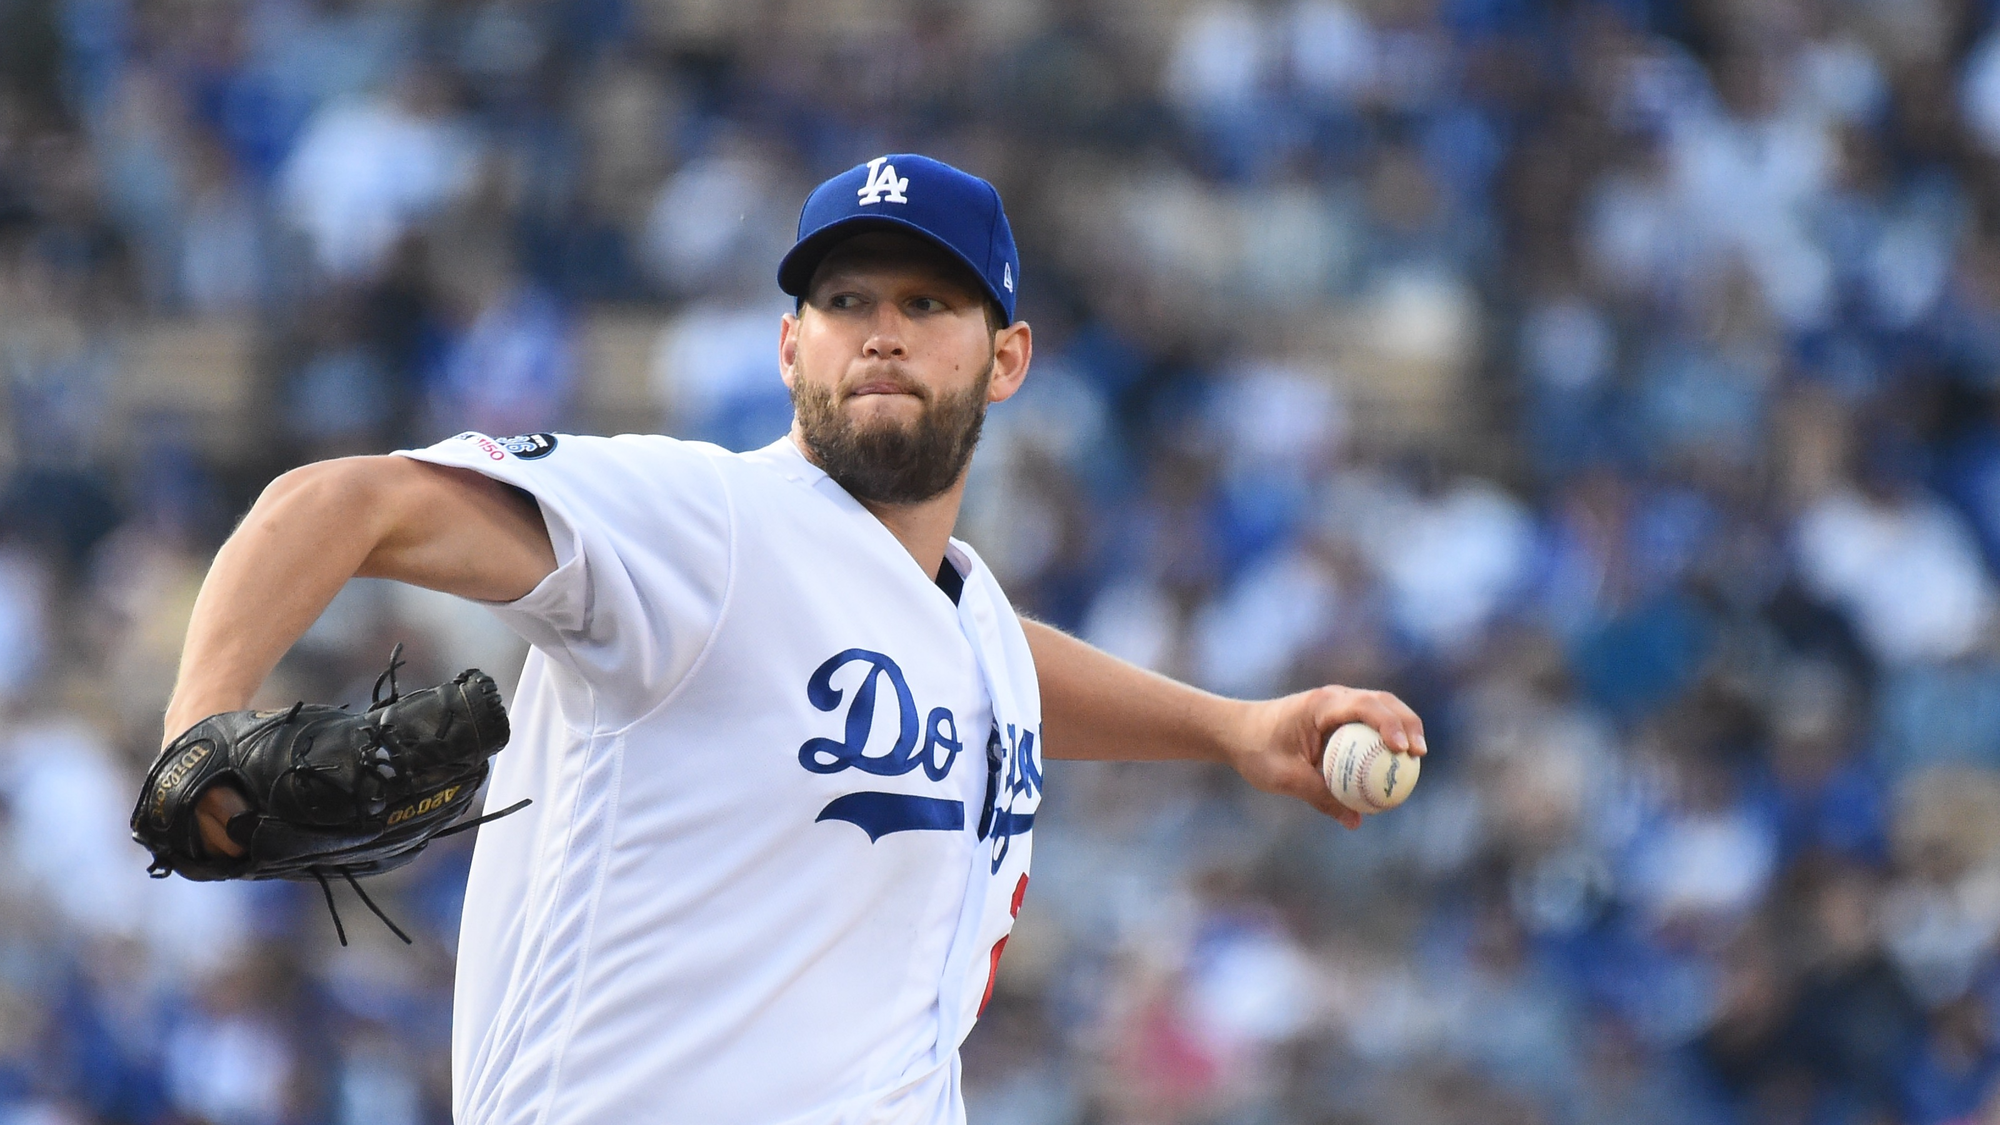 MLB Odds: Betting Specials to Consider as the 2021 Season Begins